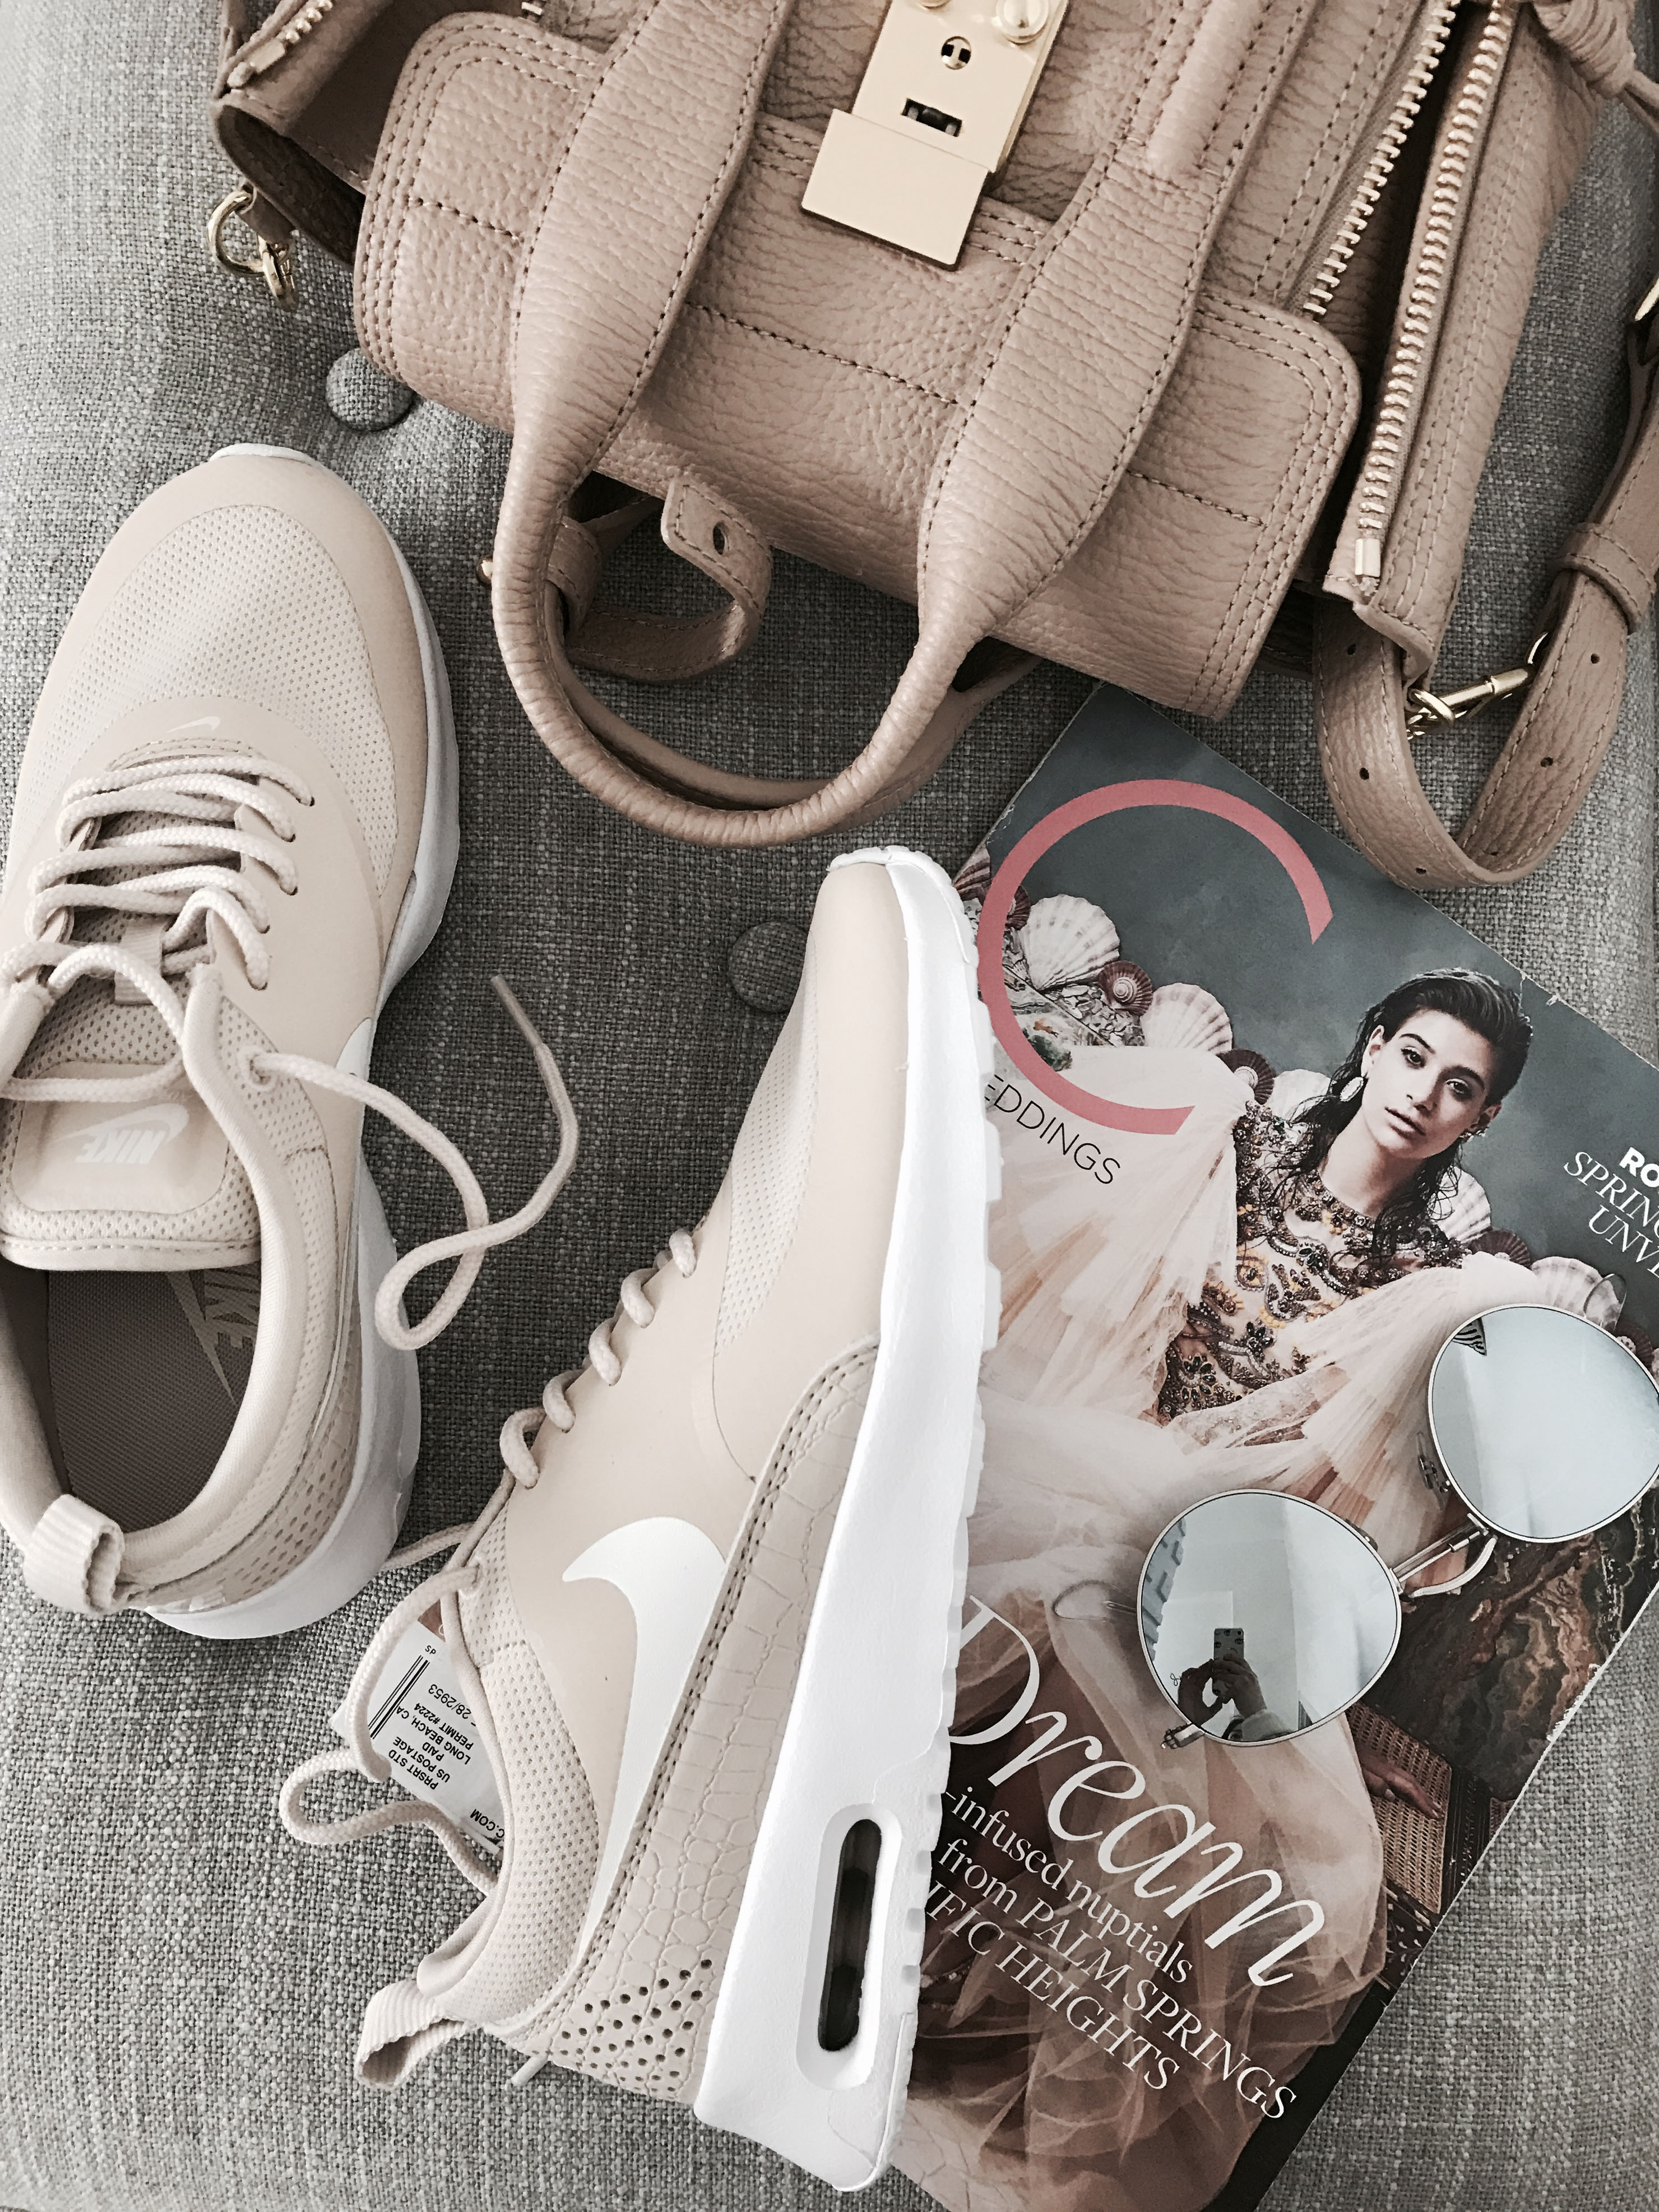 Nike Air Max Thea in nude